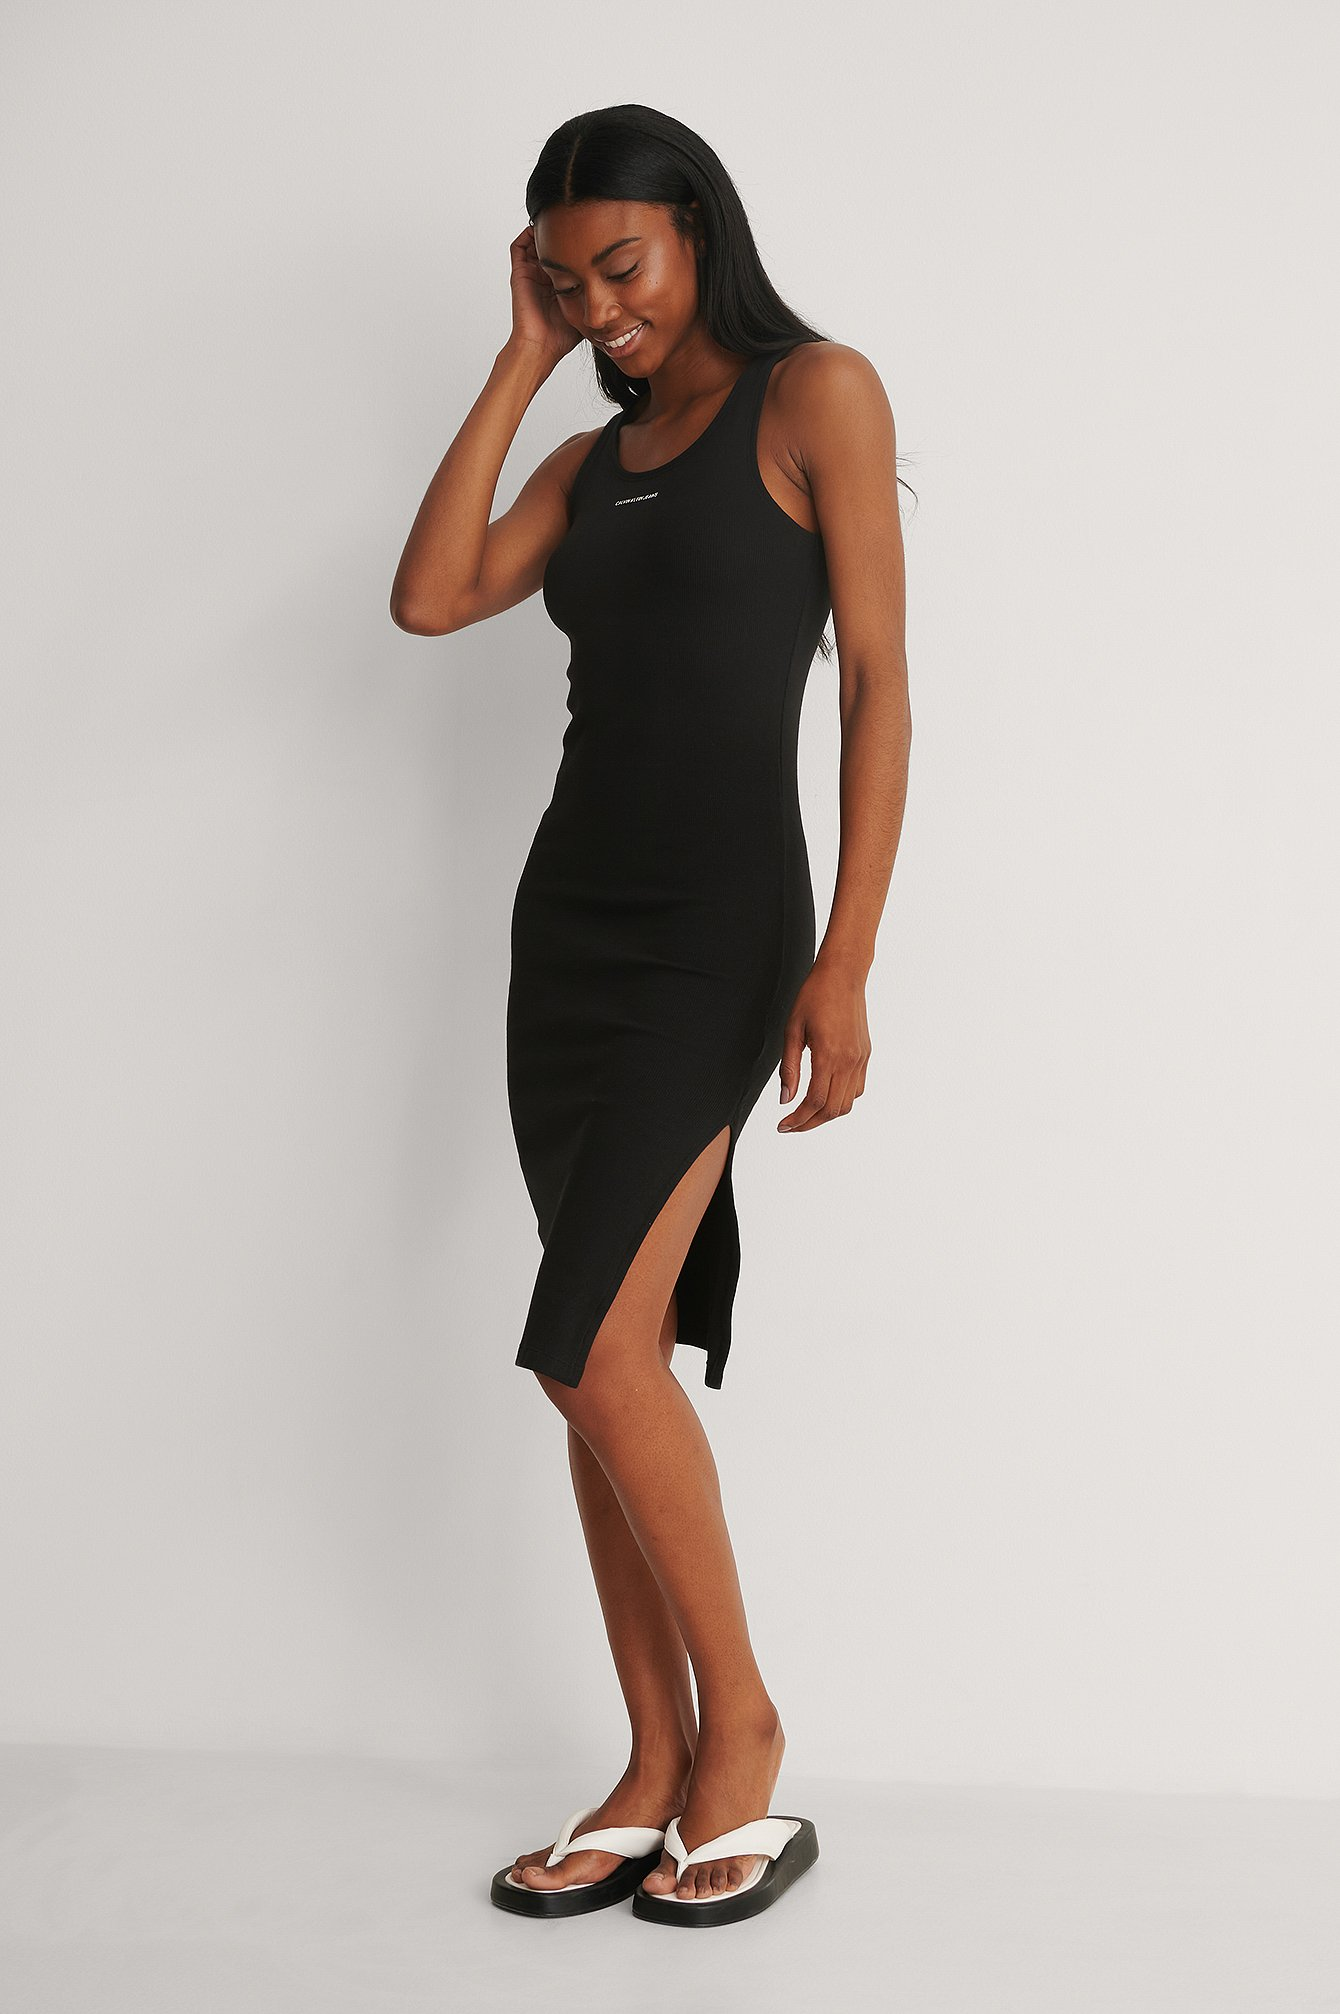 CK Black Micro Branding Strappy Rib Dress